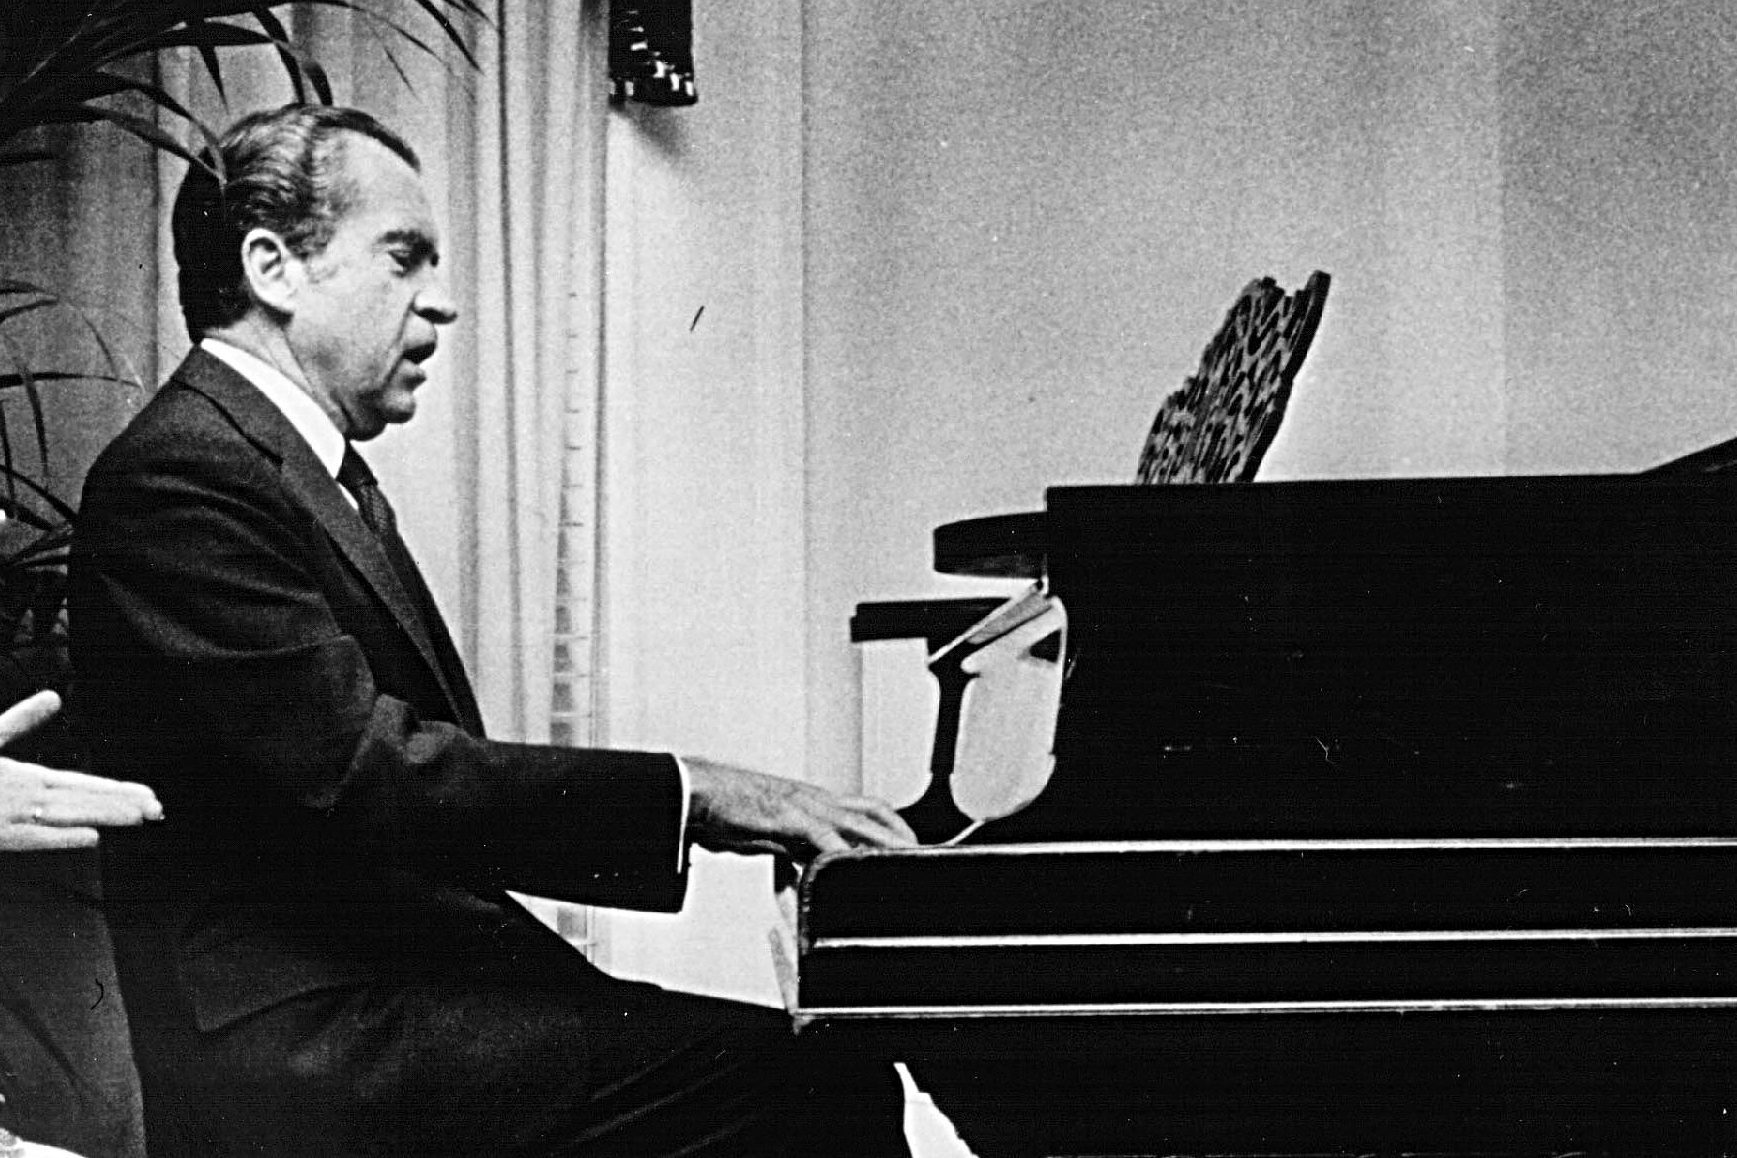 nixon playing piano